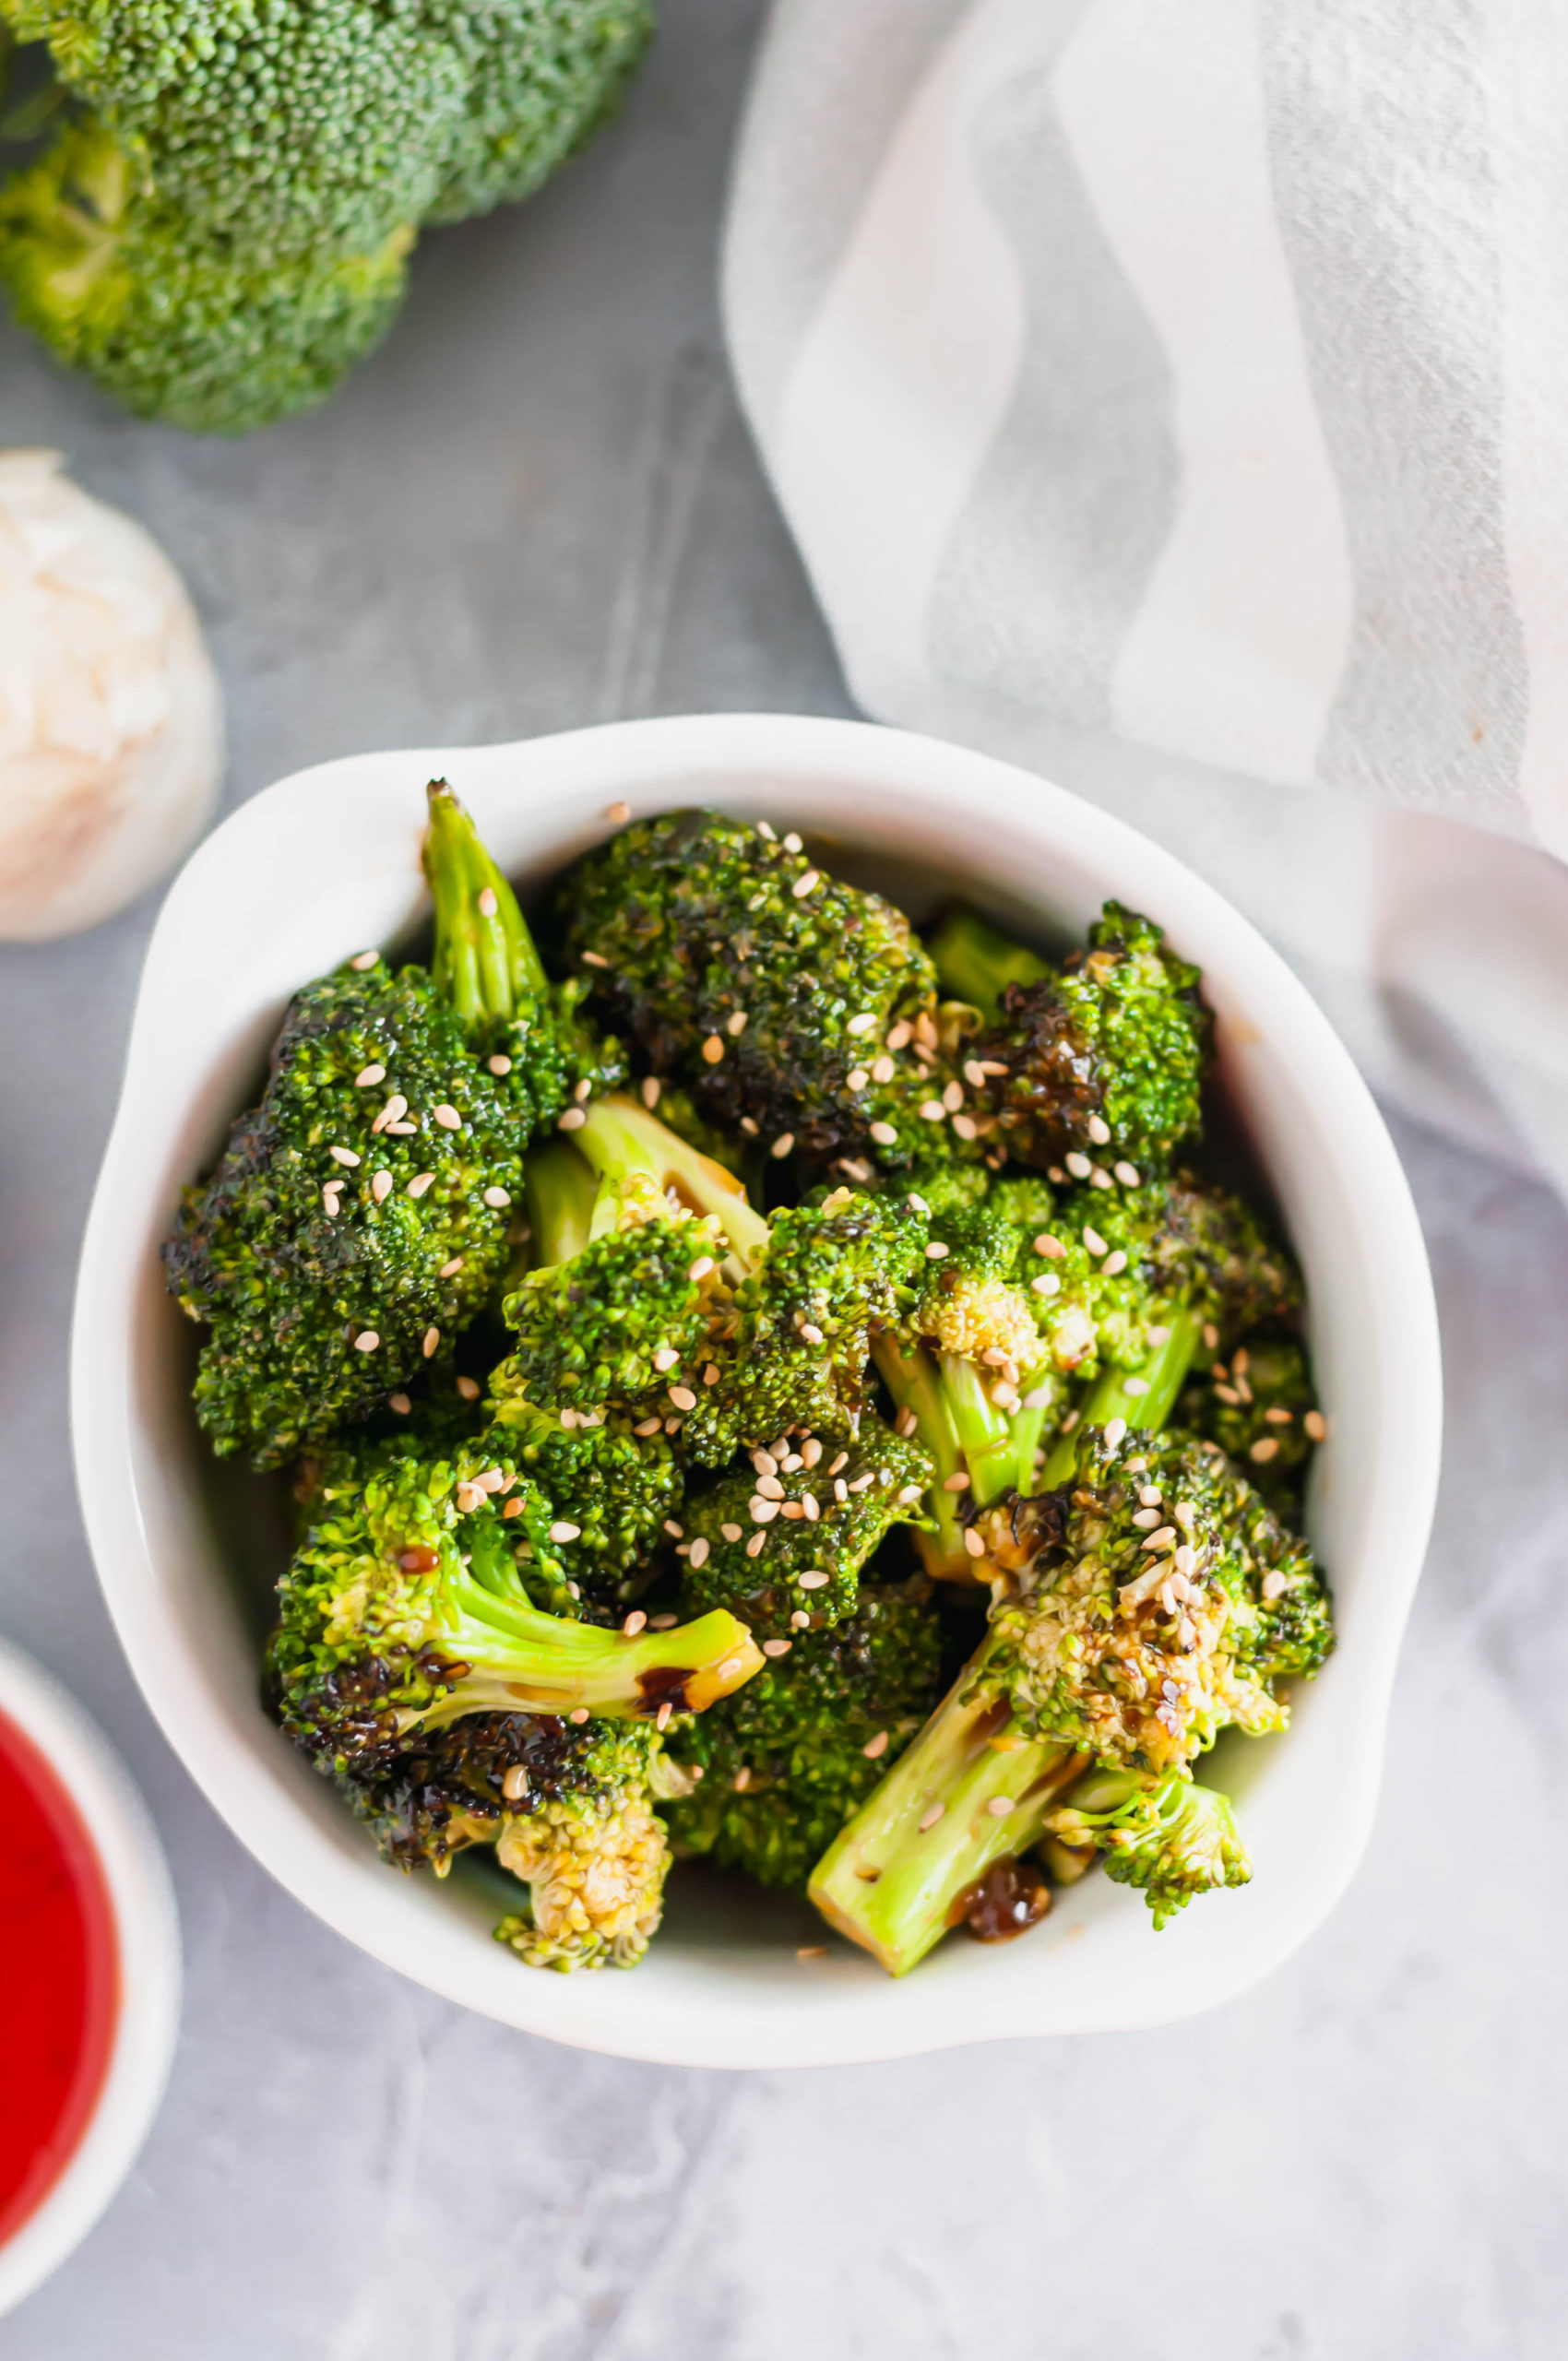 Looking for an easy, super flavorful side dish? This Thai Sweet Chili Broccoli is simple to throw together and super delicious.